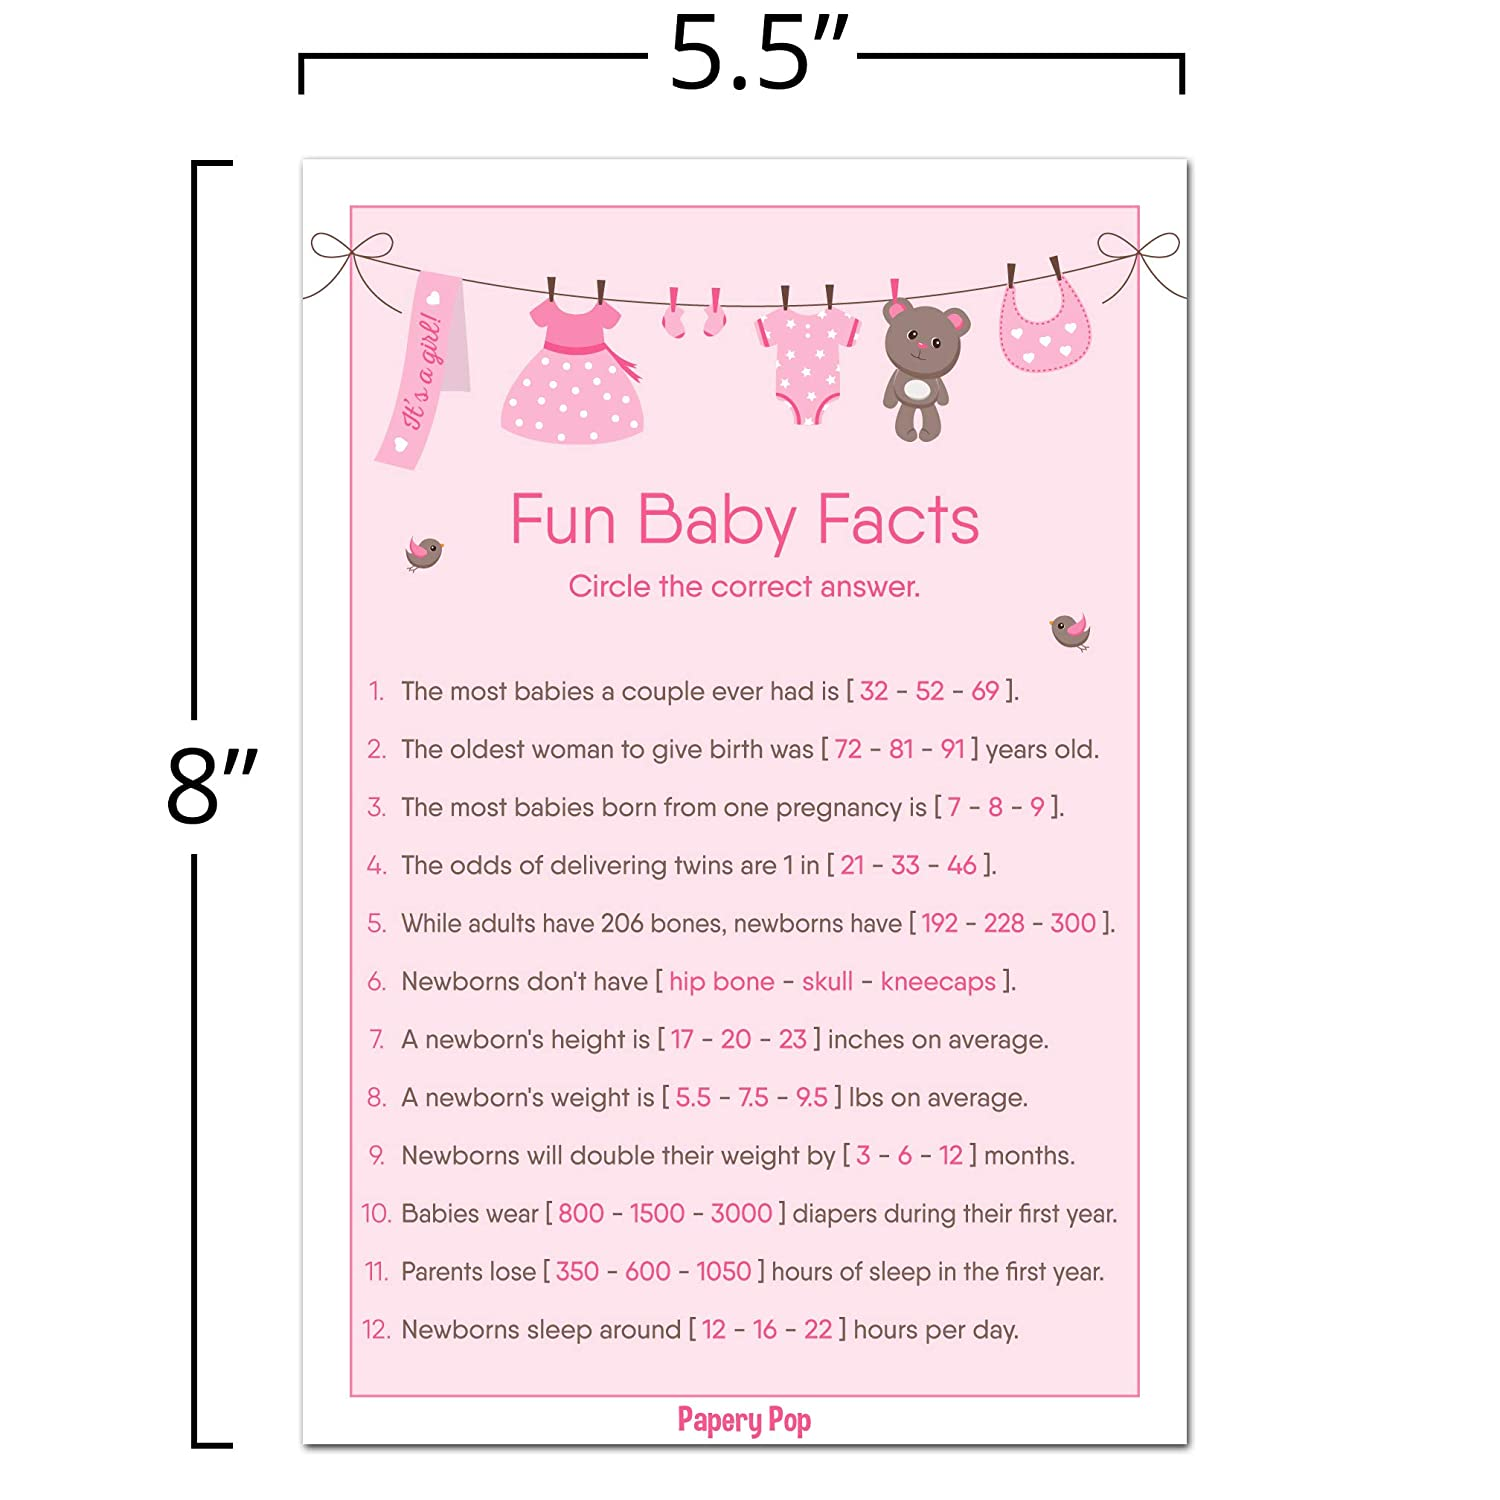 Amazon.com: Fun Baby Facts Game Cards (Pack of 50) - Baby Shower Games Idea  for Girl - Party Activities Supplies: Toys & Games